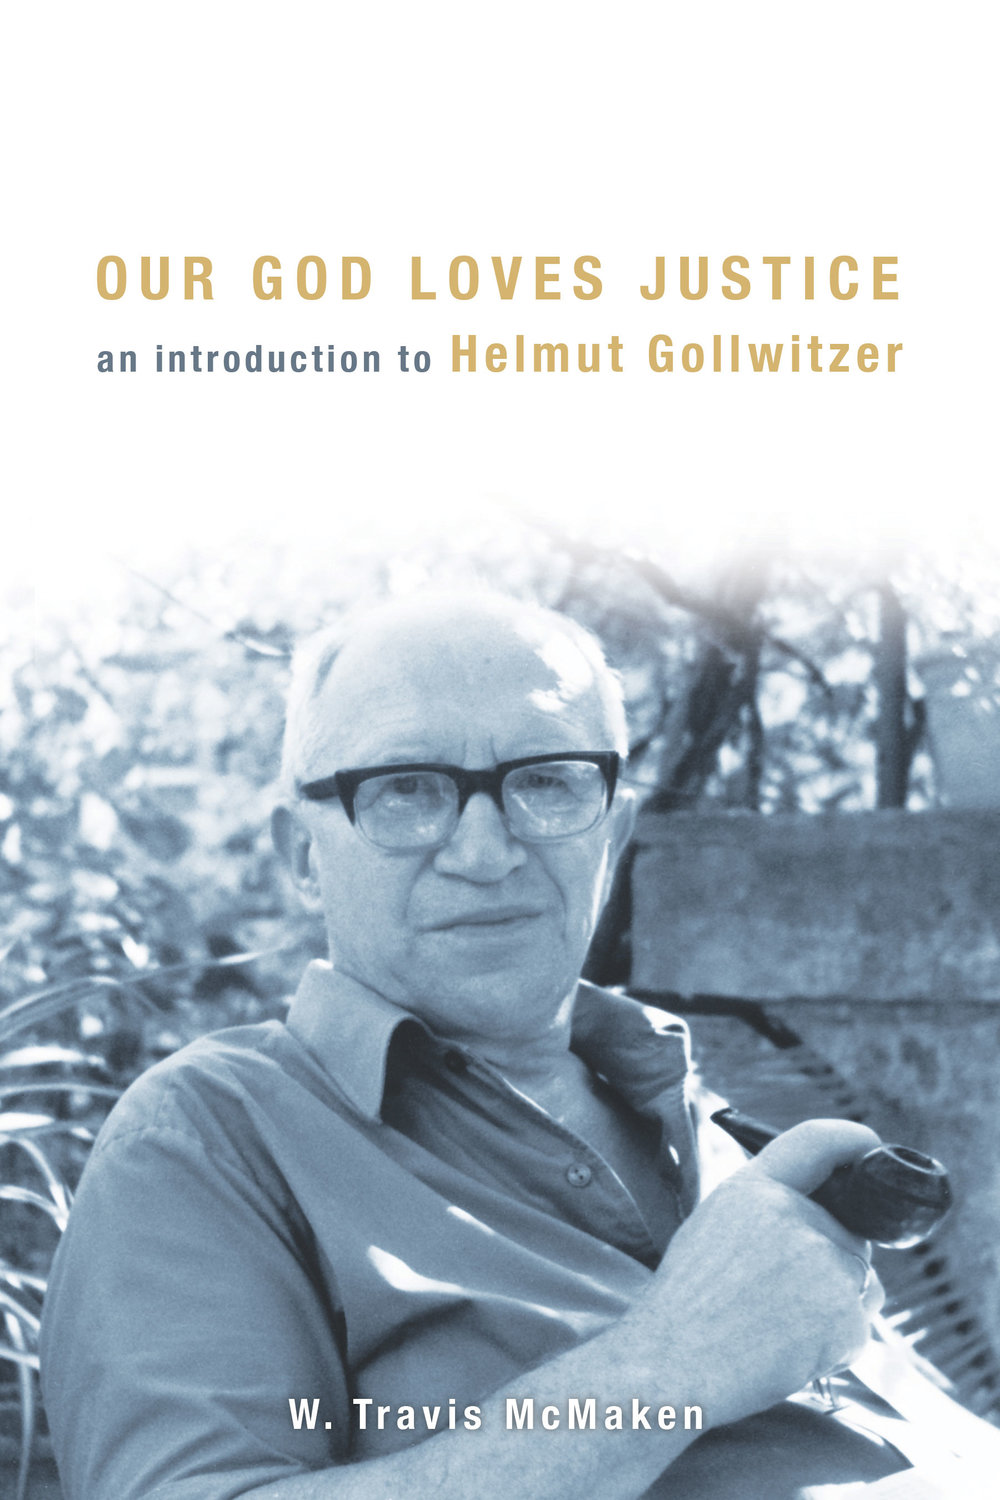 - This piece is a response by W. Travis McMaken to a series of replies to his book Our God Loves Justice: An Introduction to Helmut Gollwitzer.McMaken is an Associate Professor of Religion at Lindenwood University. His previous work includes The Sign of the Gospel: Toward an Evangelical Doctrine of Infant Baptism after Karl Barth.